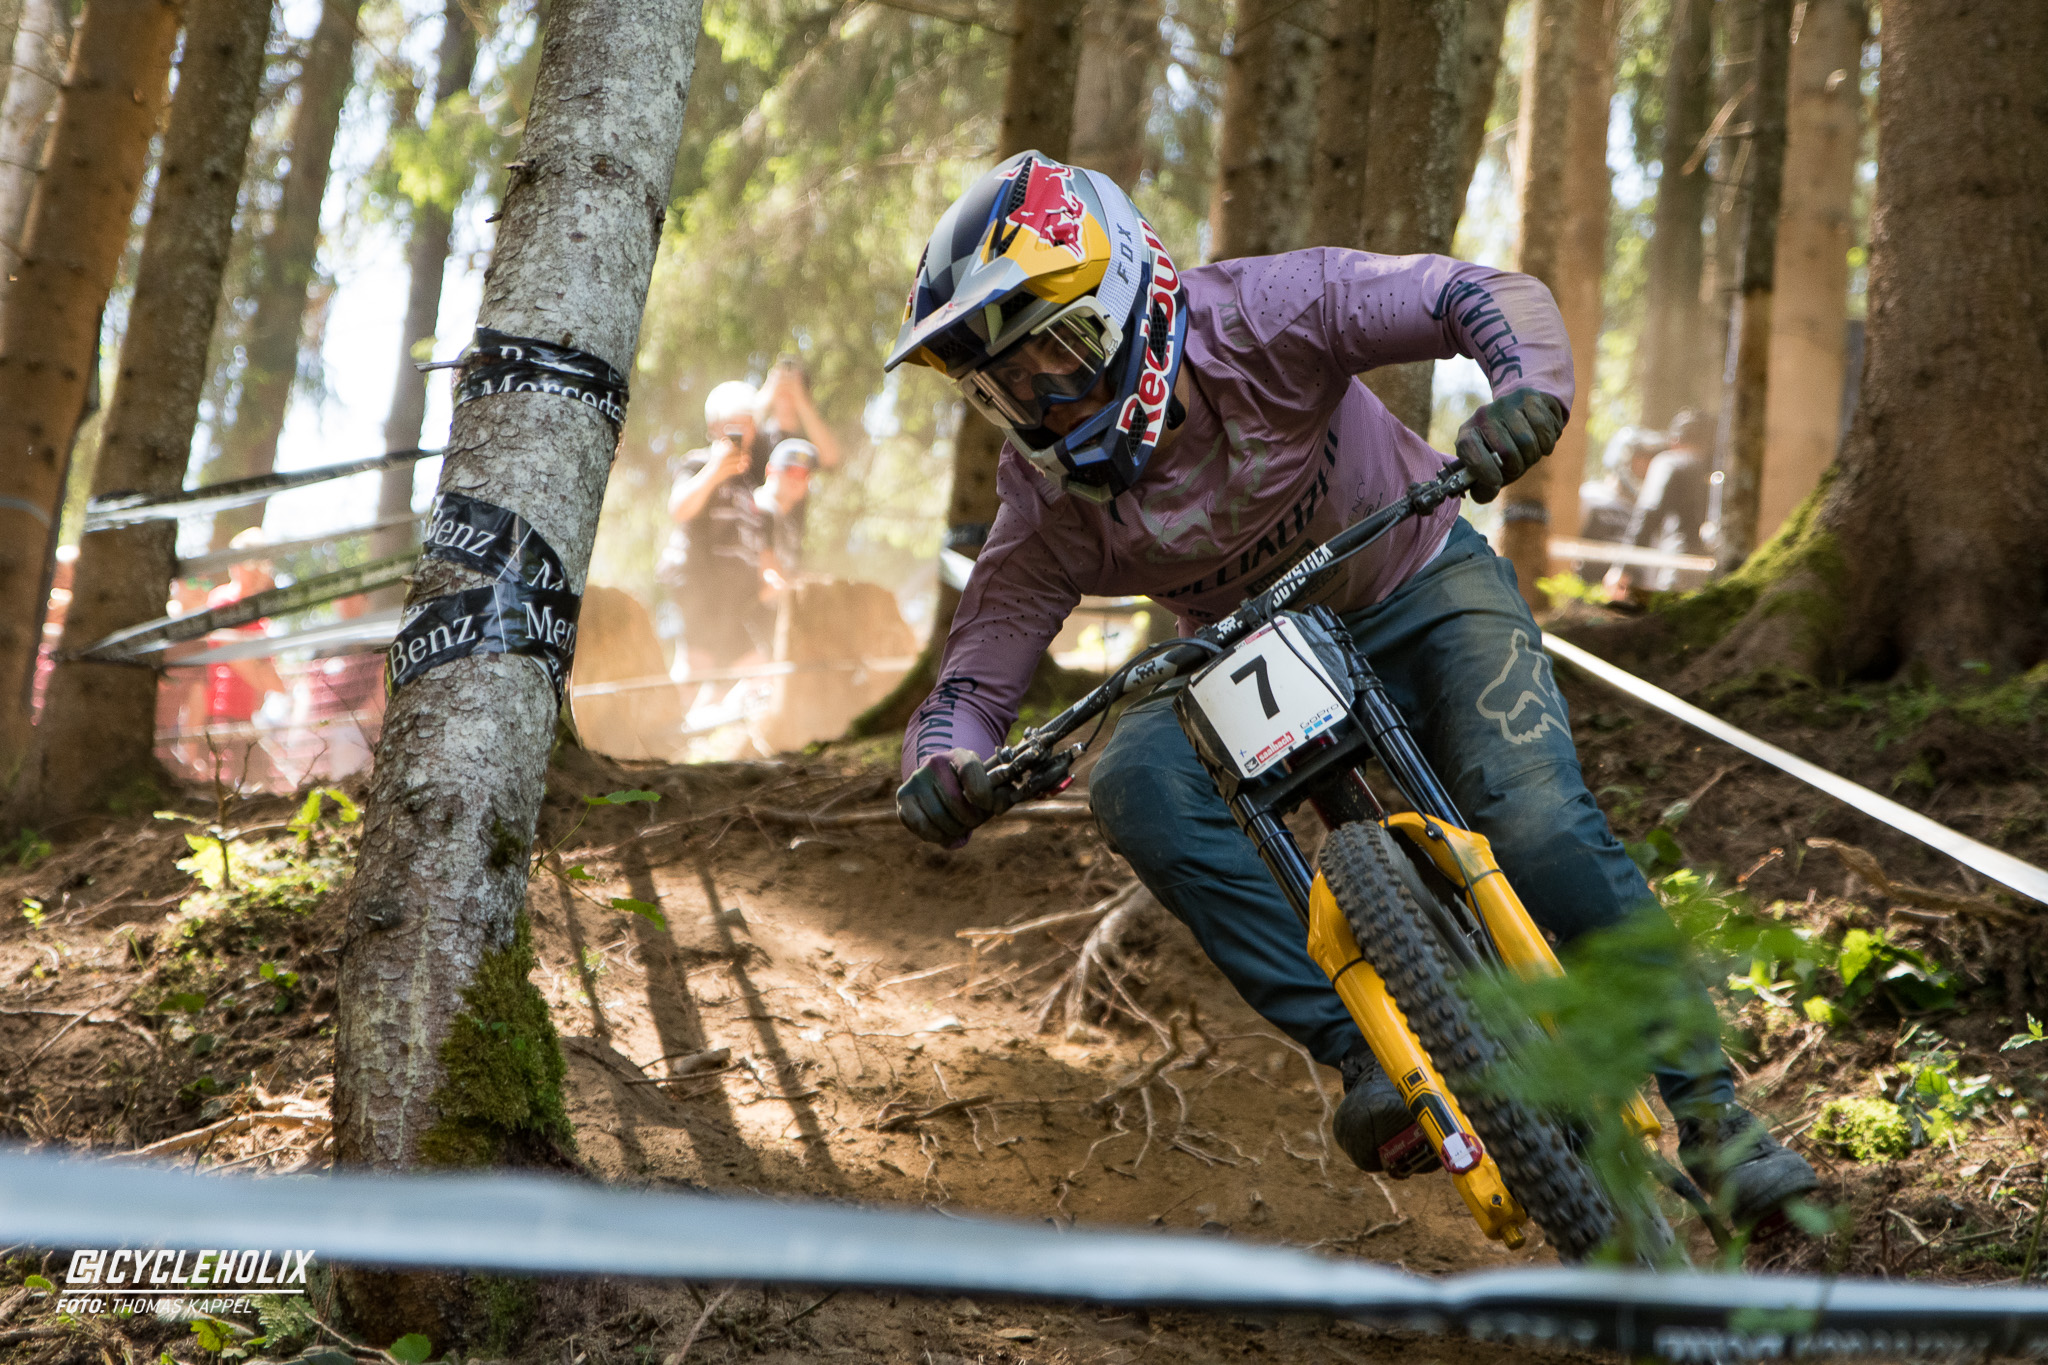 2019 Downhill Worldcup Leogang Finale Action 23